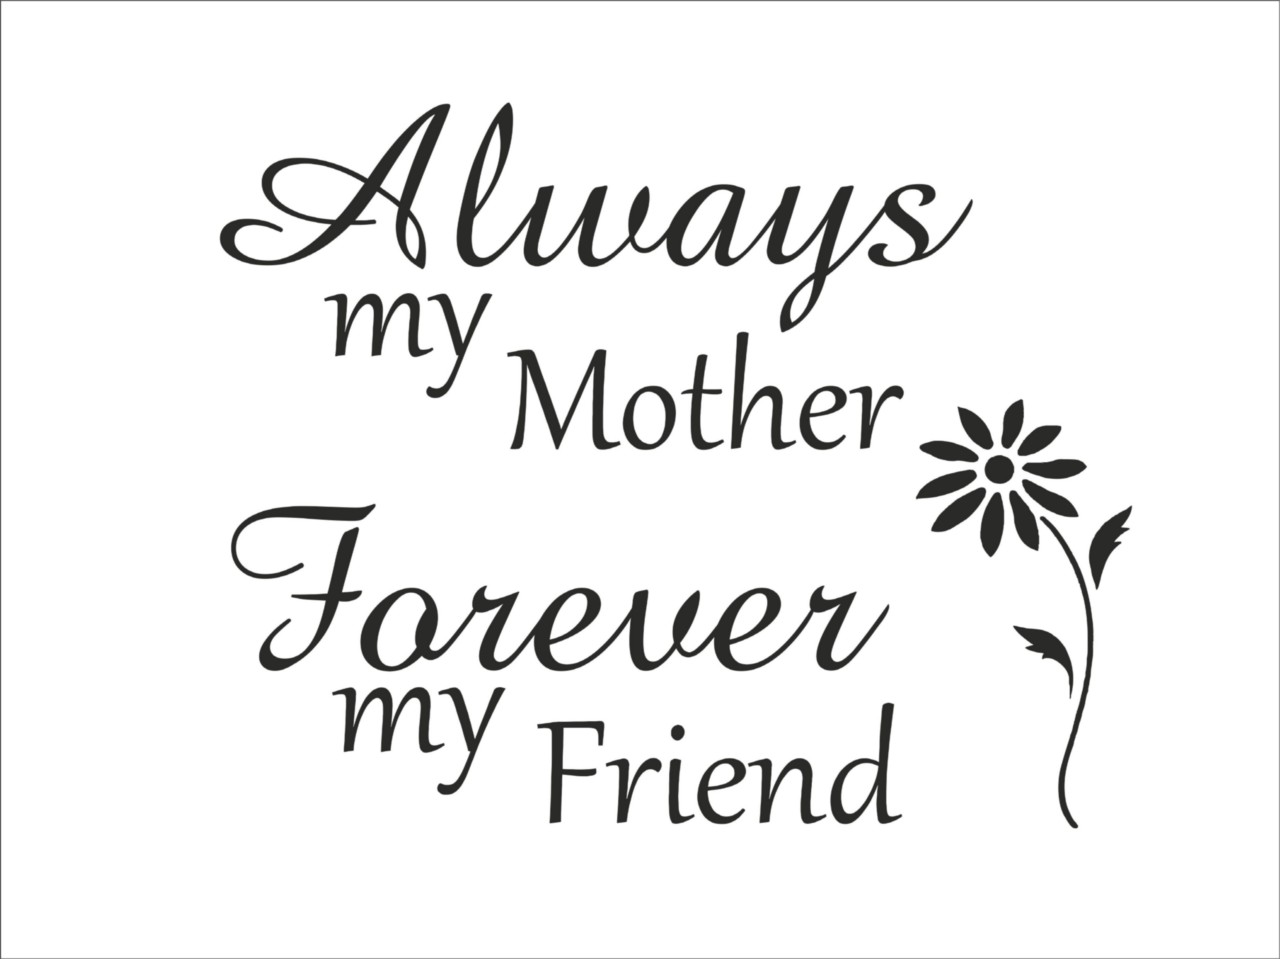 mother-quotes-hd-wallpaper-13